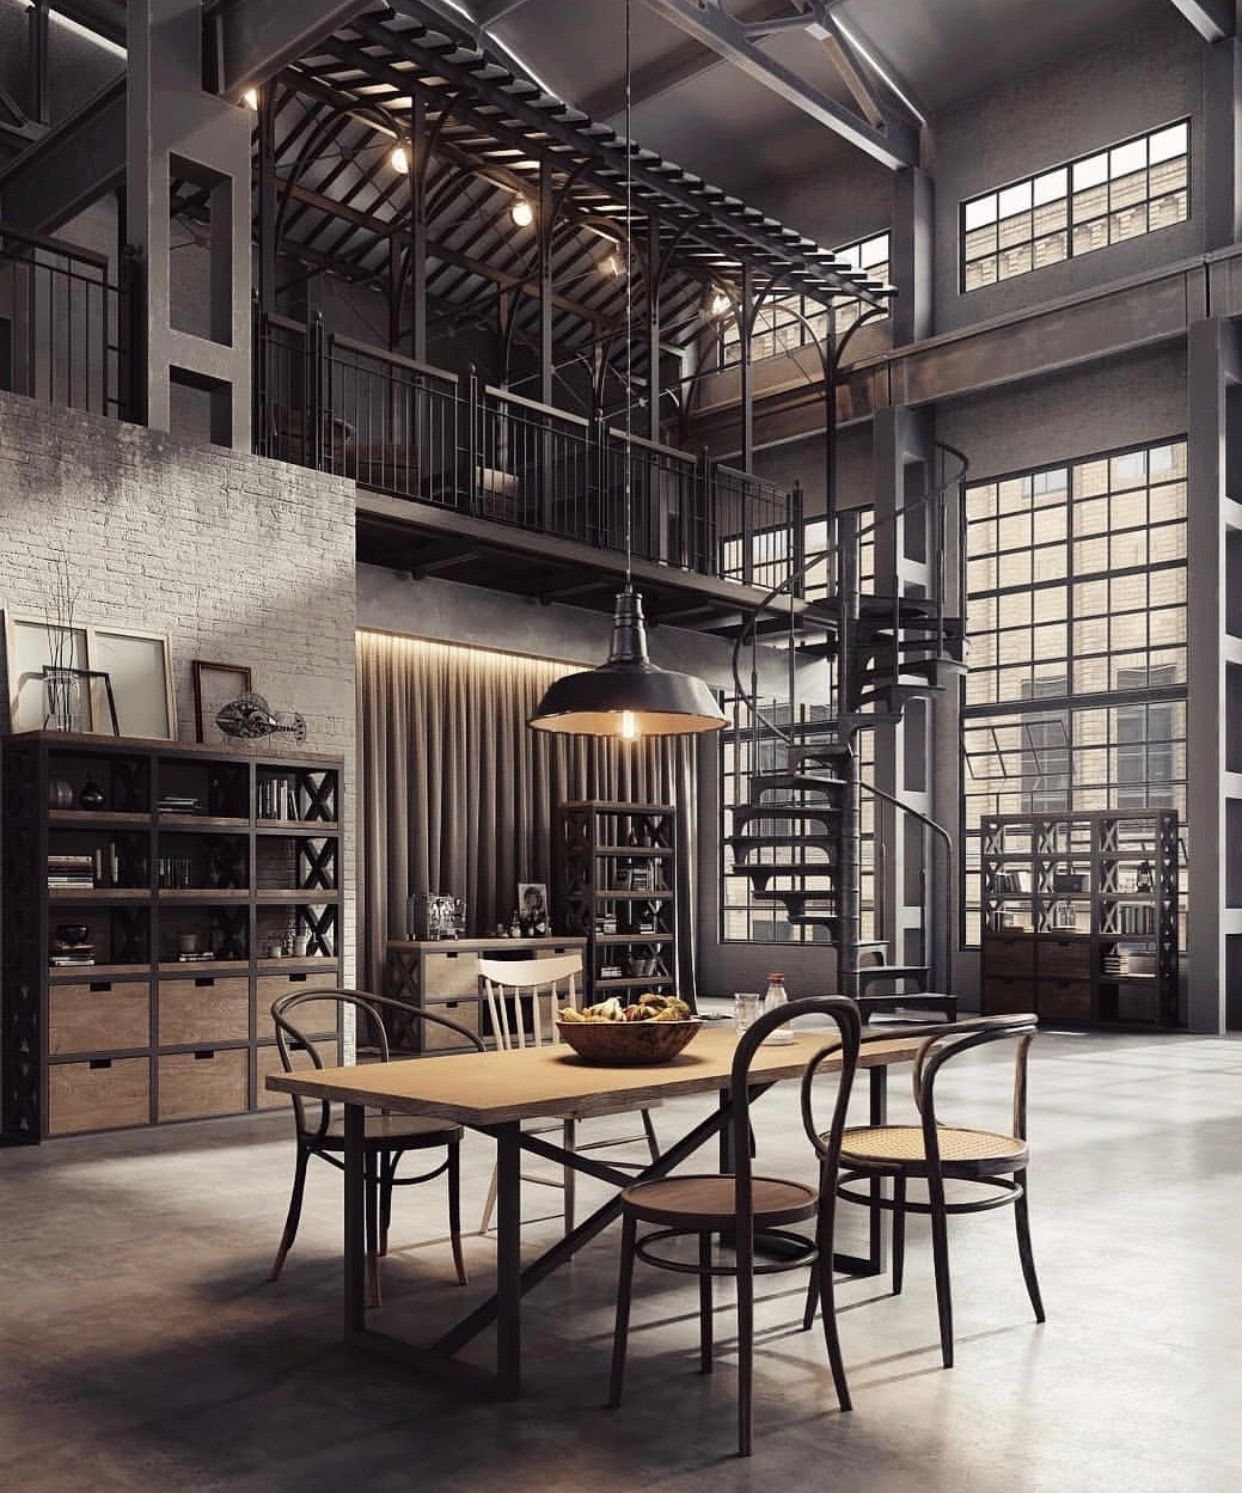 Vintage Industrial Design Ideas For Your Loft #loftdesign